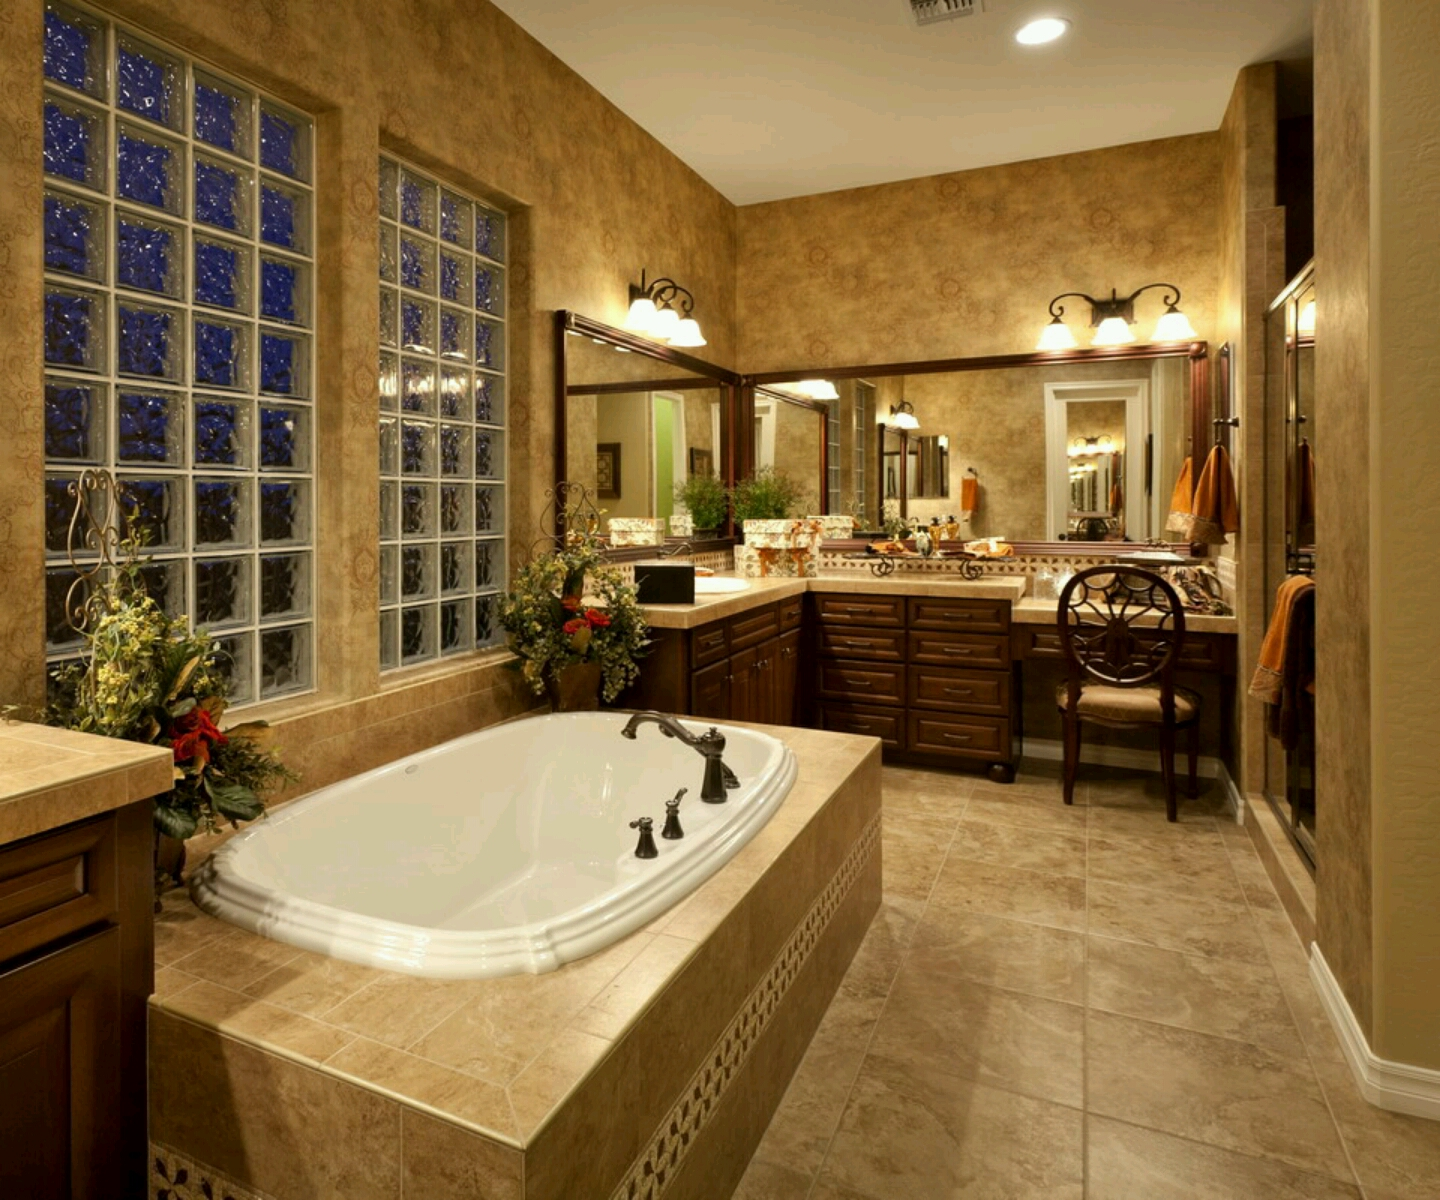 Luxury modern bathrooms designs ideas furniture gallery for Bathroom ideas luxury